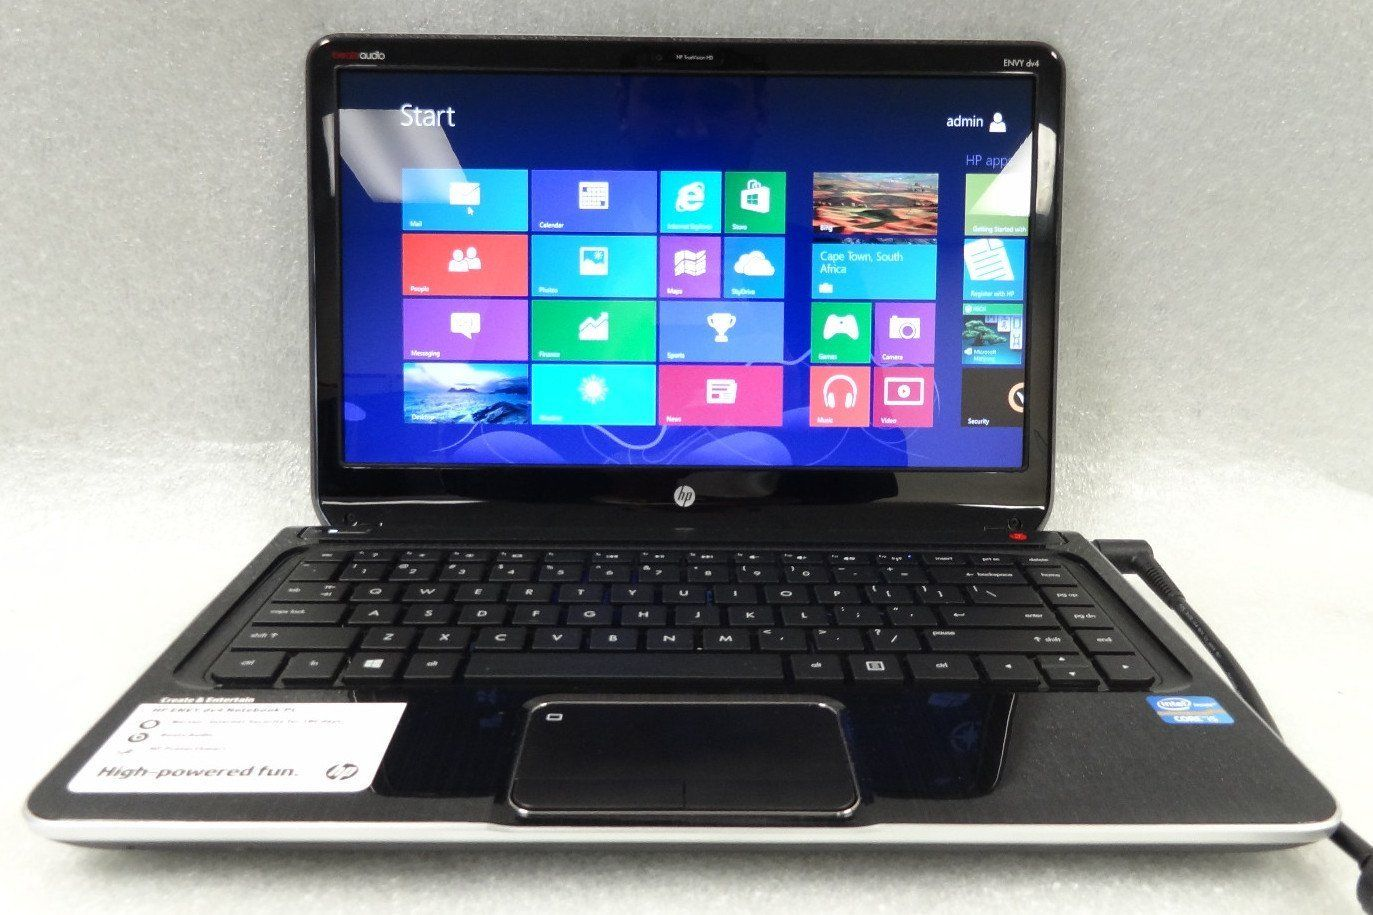 HP Envy DV4-5243CL 14 Inch Notebook PC With Beats Audio